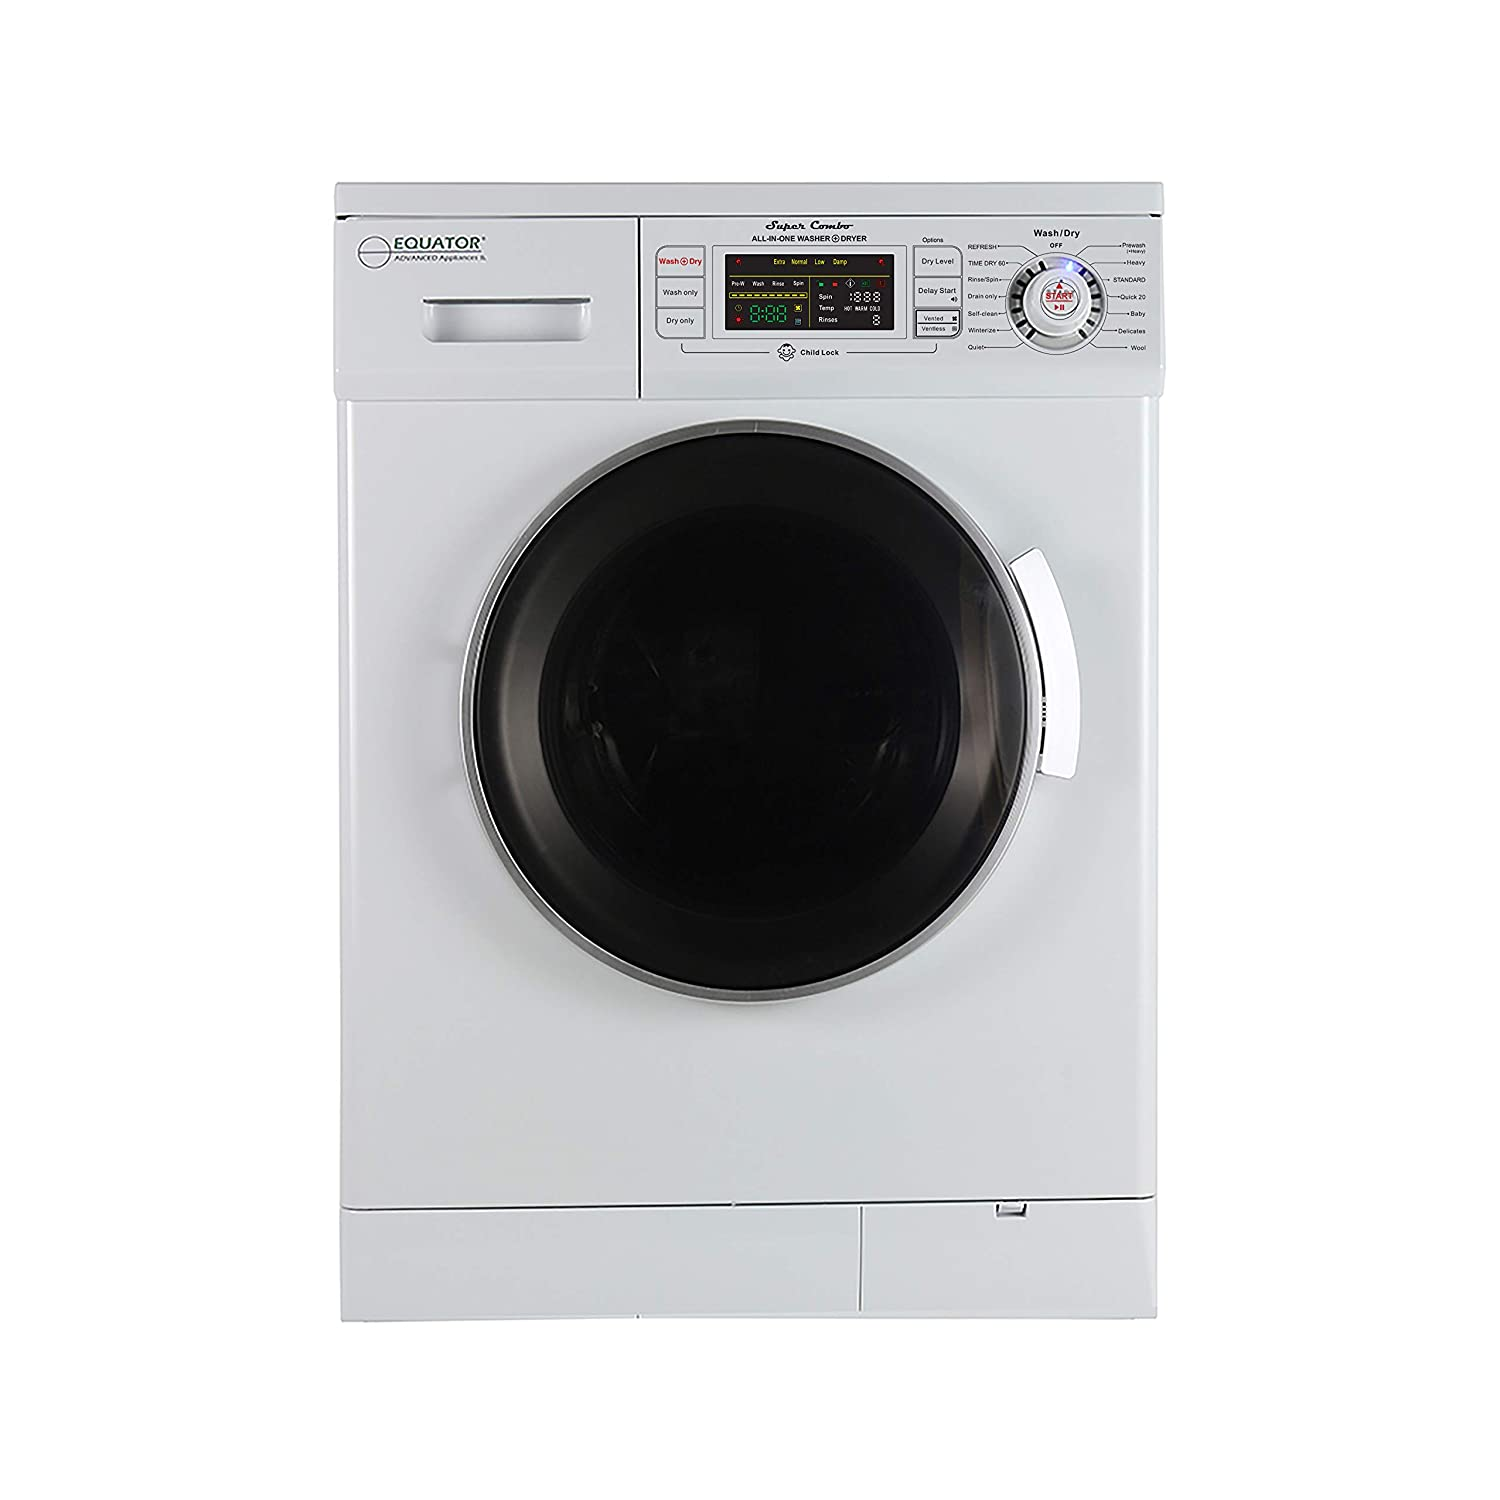 Equator 24 inch Compact New Version All-in-One Combo Washer-Dryer, Vented or Ventless, 1200 RPM, Auto Water, Auto Dry, Winterize, Quiet, Fully Digital in White 2019 Model